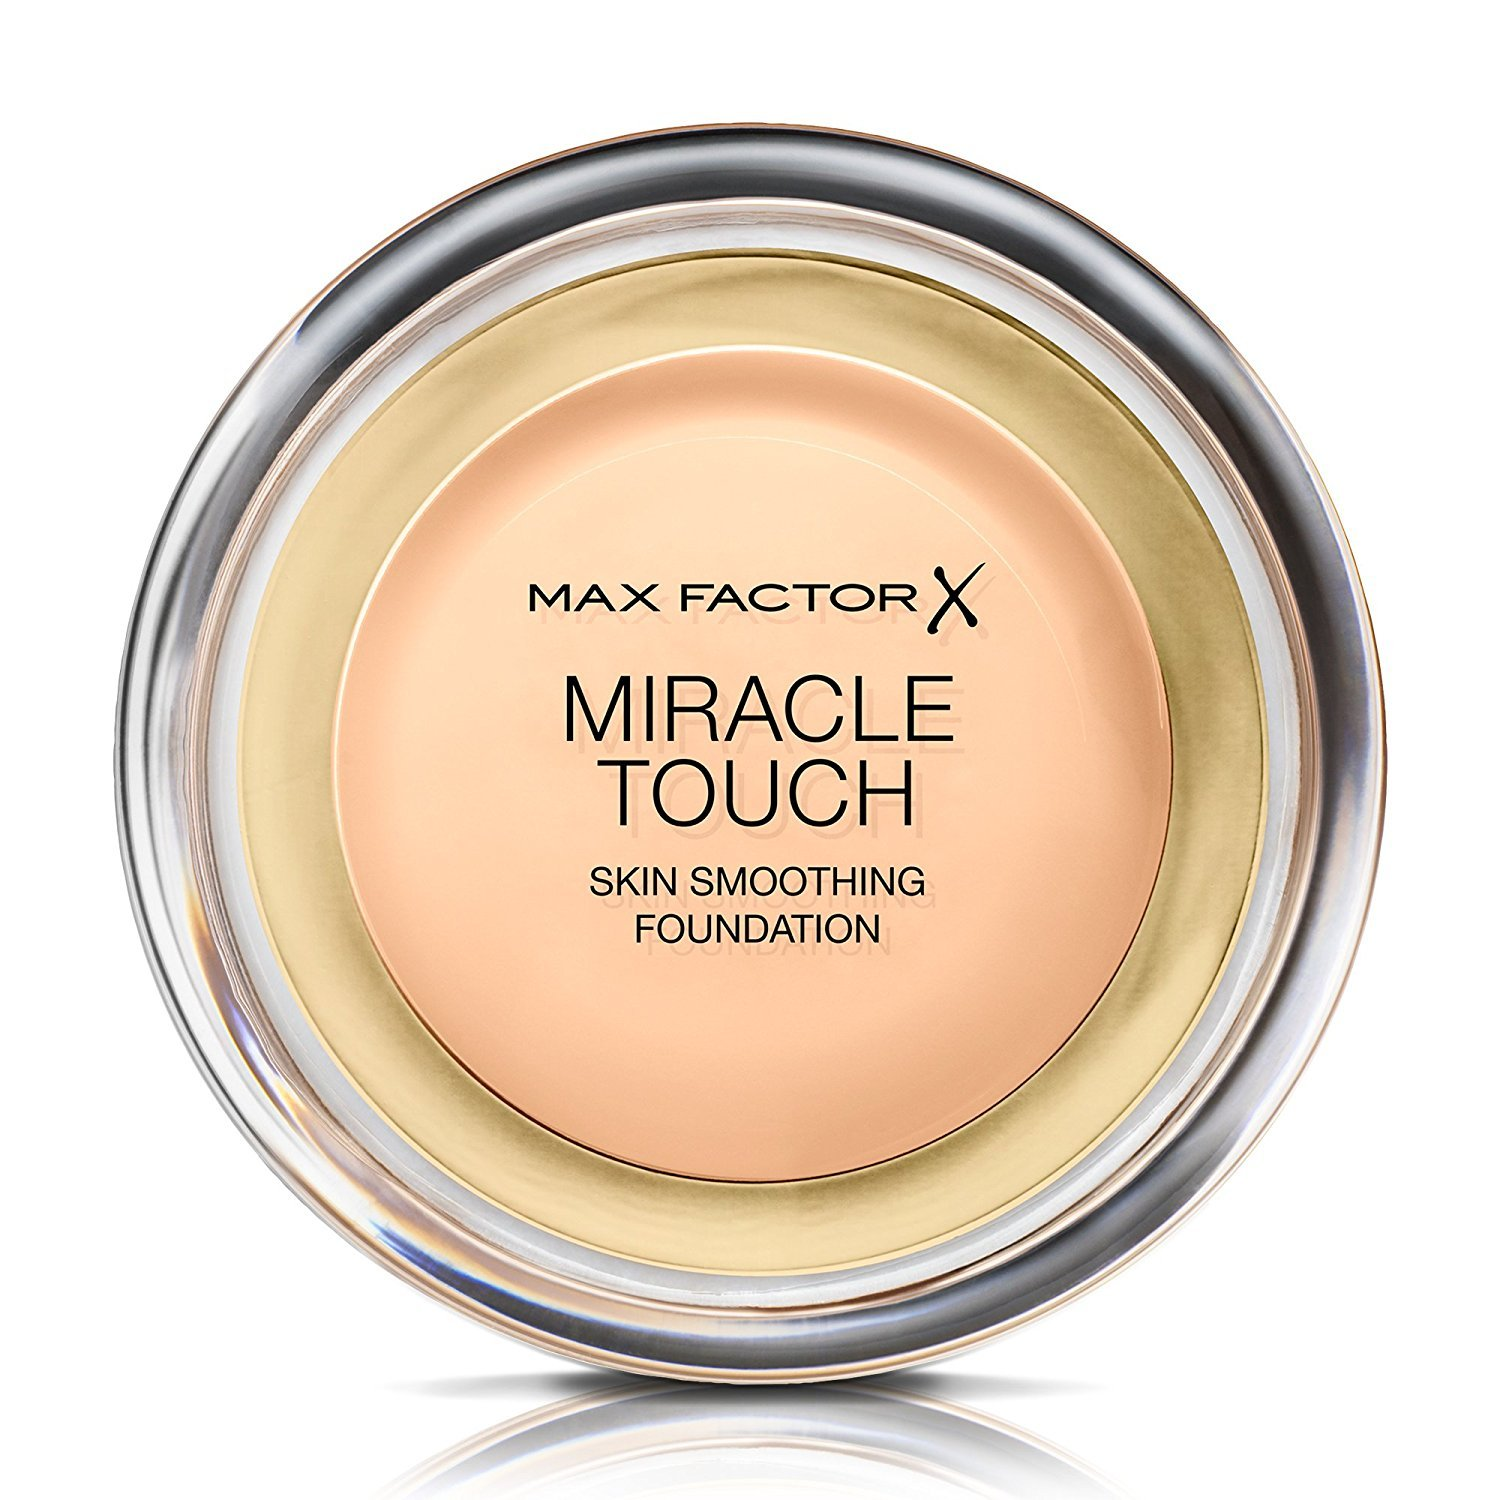 3 x Max Factor Miracle Touch Skin Smoothing Foundation 11.5g - 45 Warm Almond